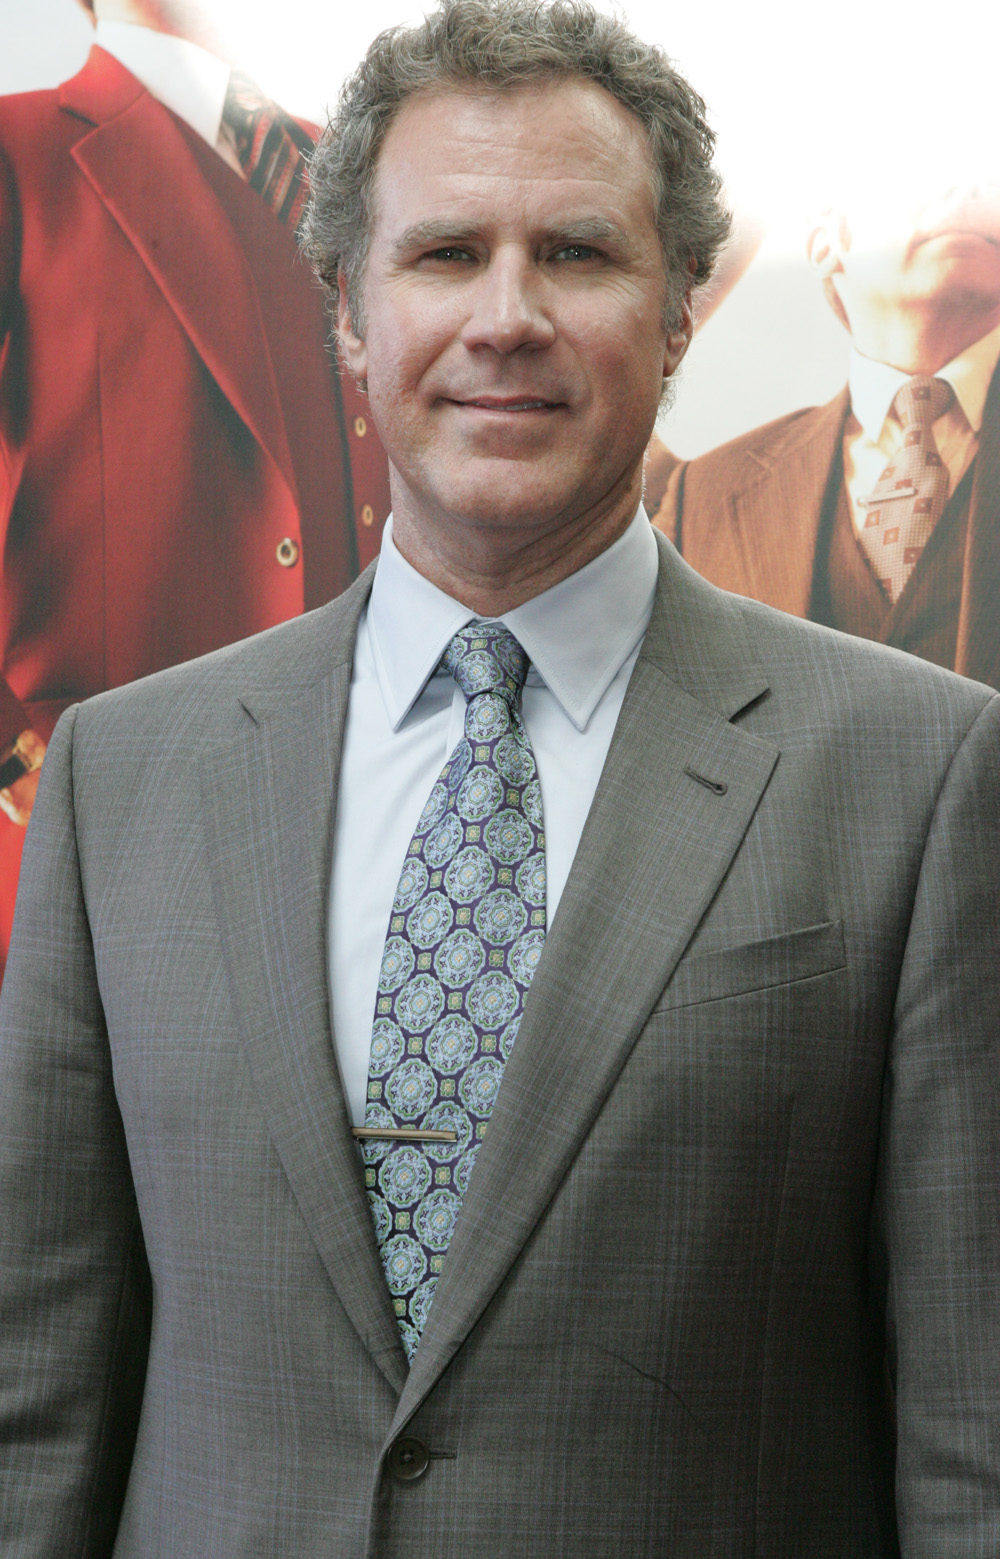 Depiction of Will Ferrell